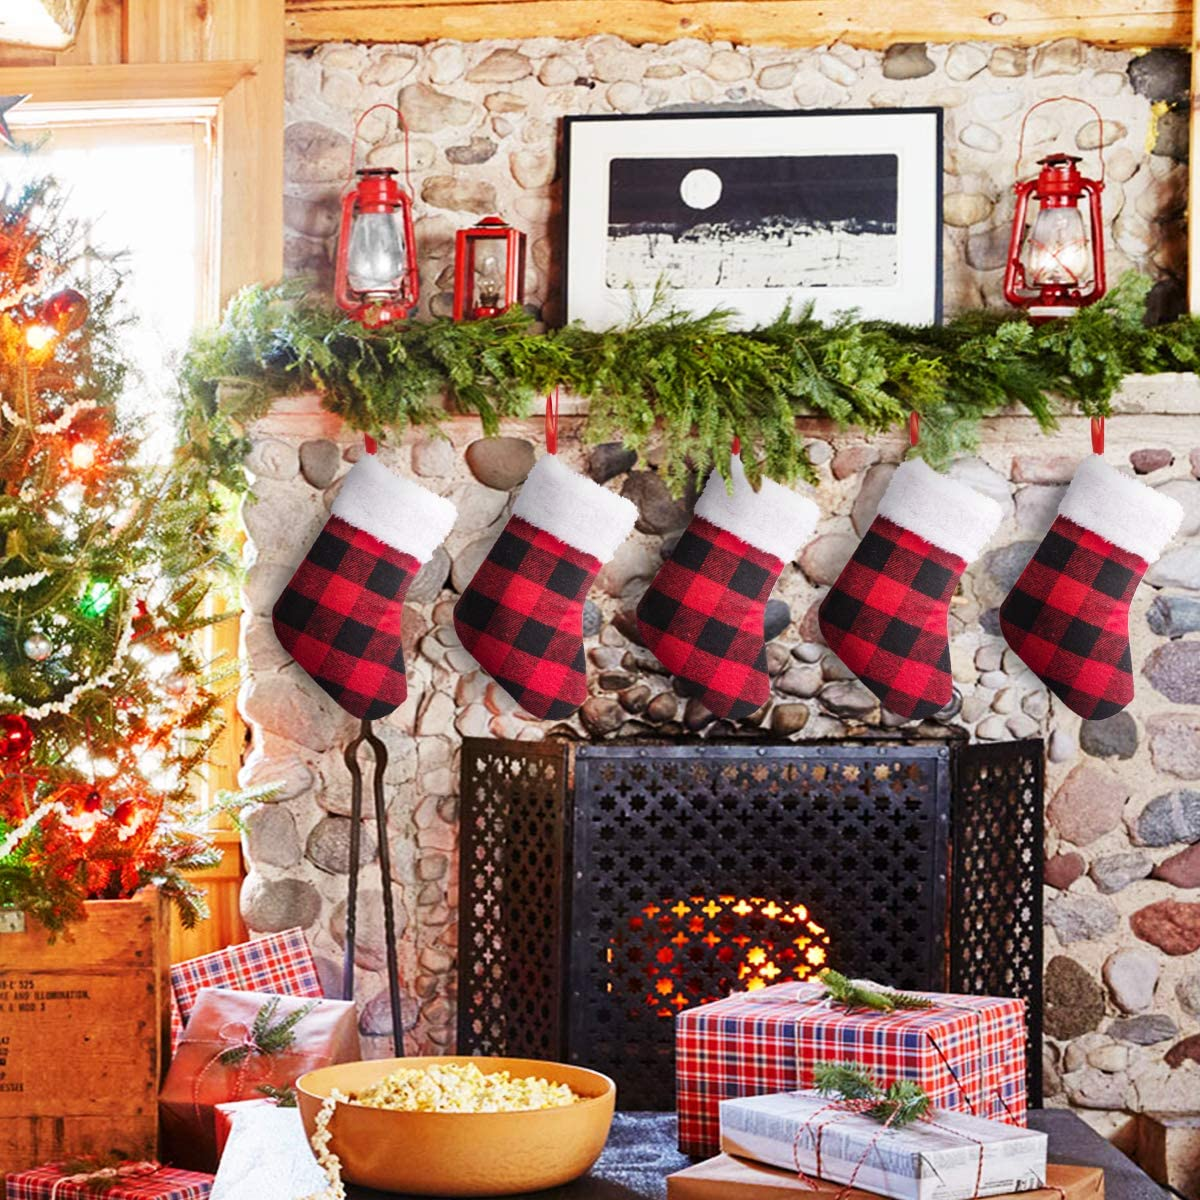 SEKKVY 12pcs Christmas Decoration Stockings, 7 Inch Red Plaid Polyester Candy Pouch Bag Mini Christmas Stockings for Xmas Tree, Home, Family Garden Decoration